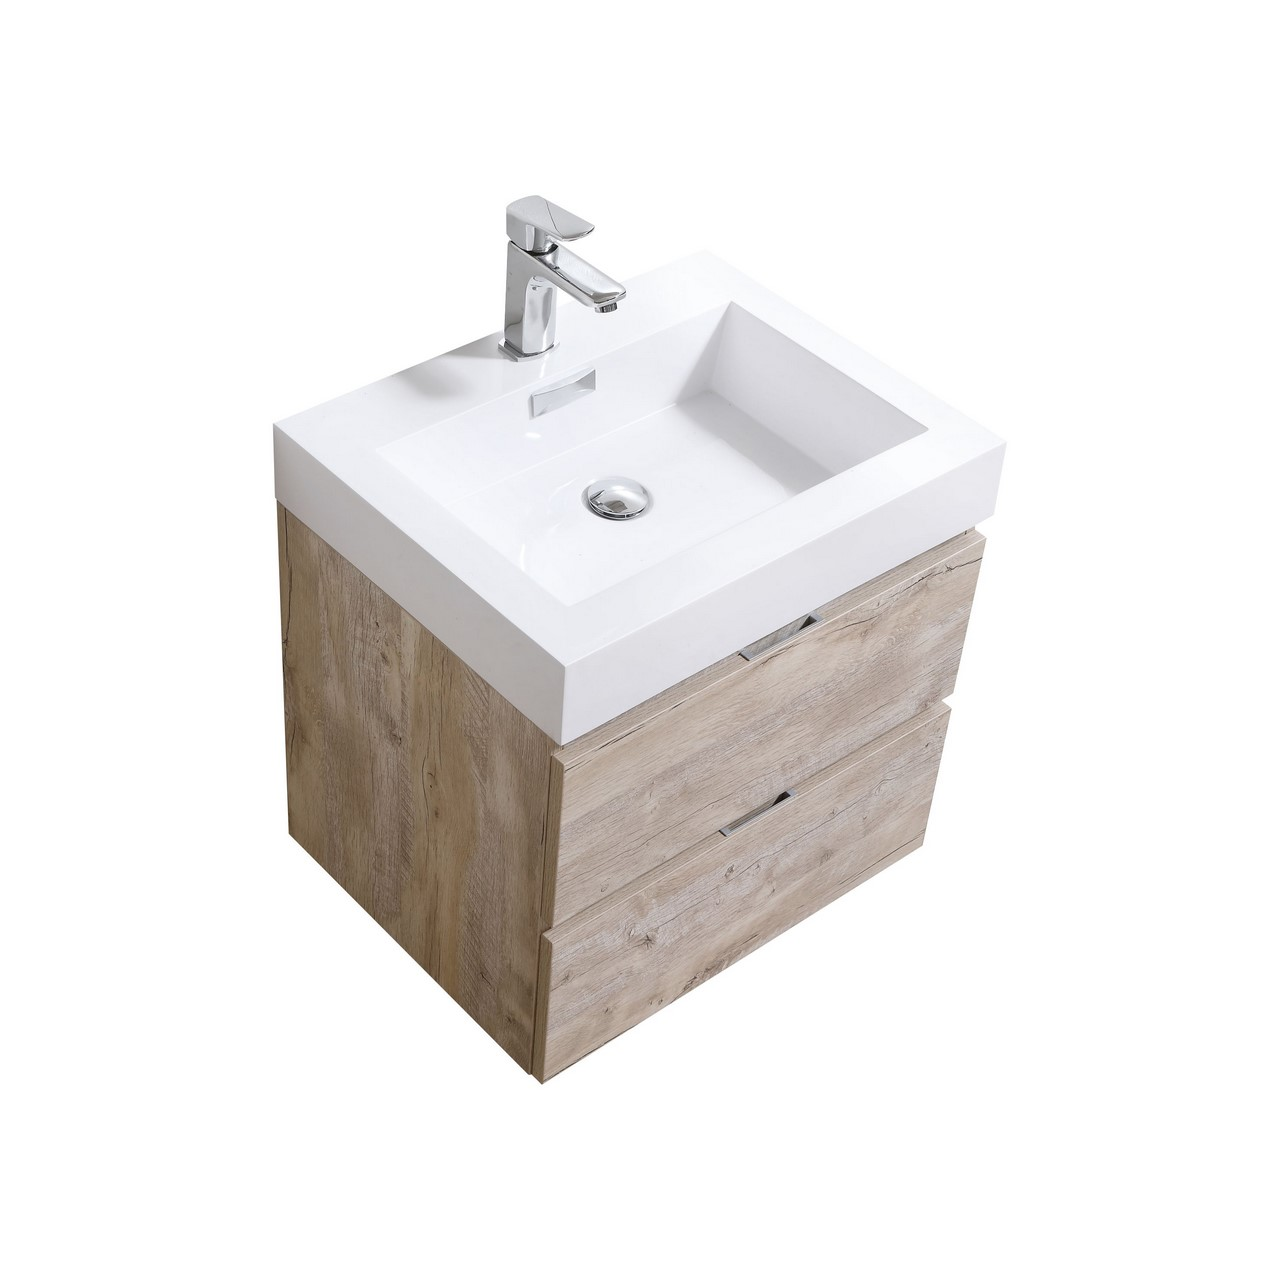 "Kubebath - 24"" Floating Vanity Set - Natural Finish"